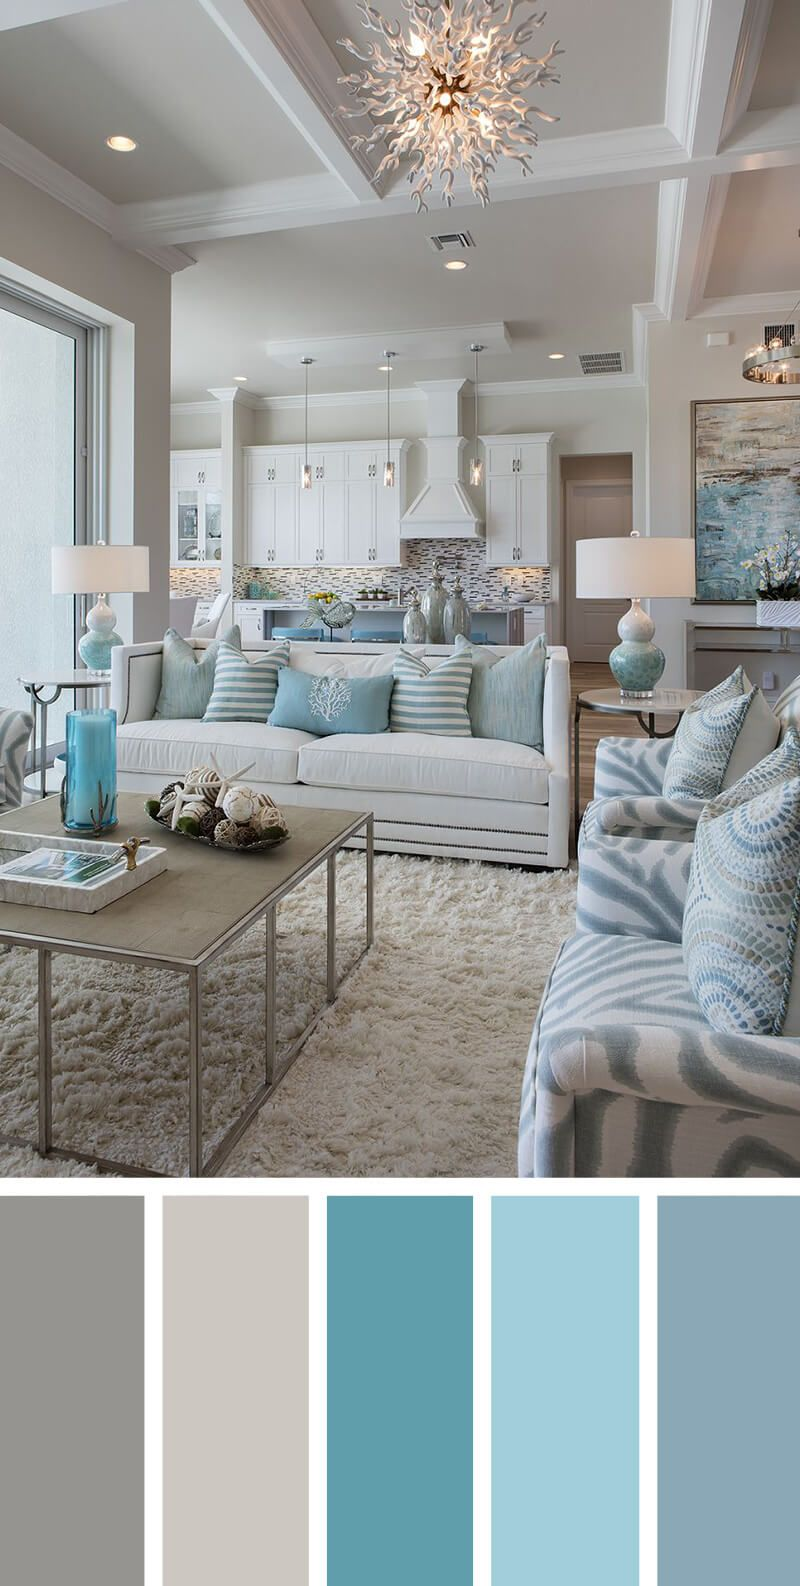 Beau A Calming Sea Of Blues. Very Comfy And Cozy. House Color Schemes  InteriorHome ...